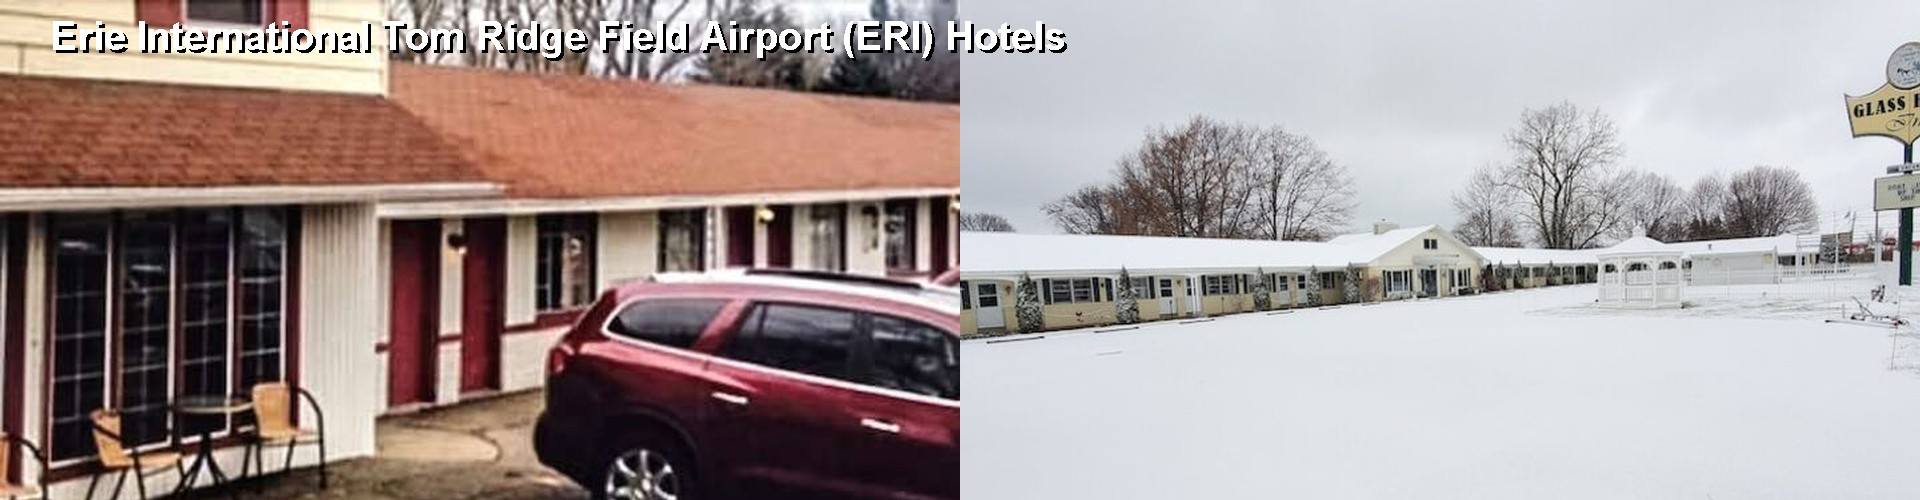 5 Best Hotels near Erie International Tom Ridge Field Airport (ERI)